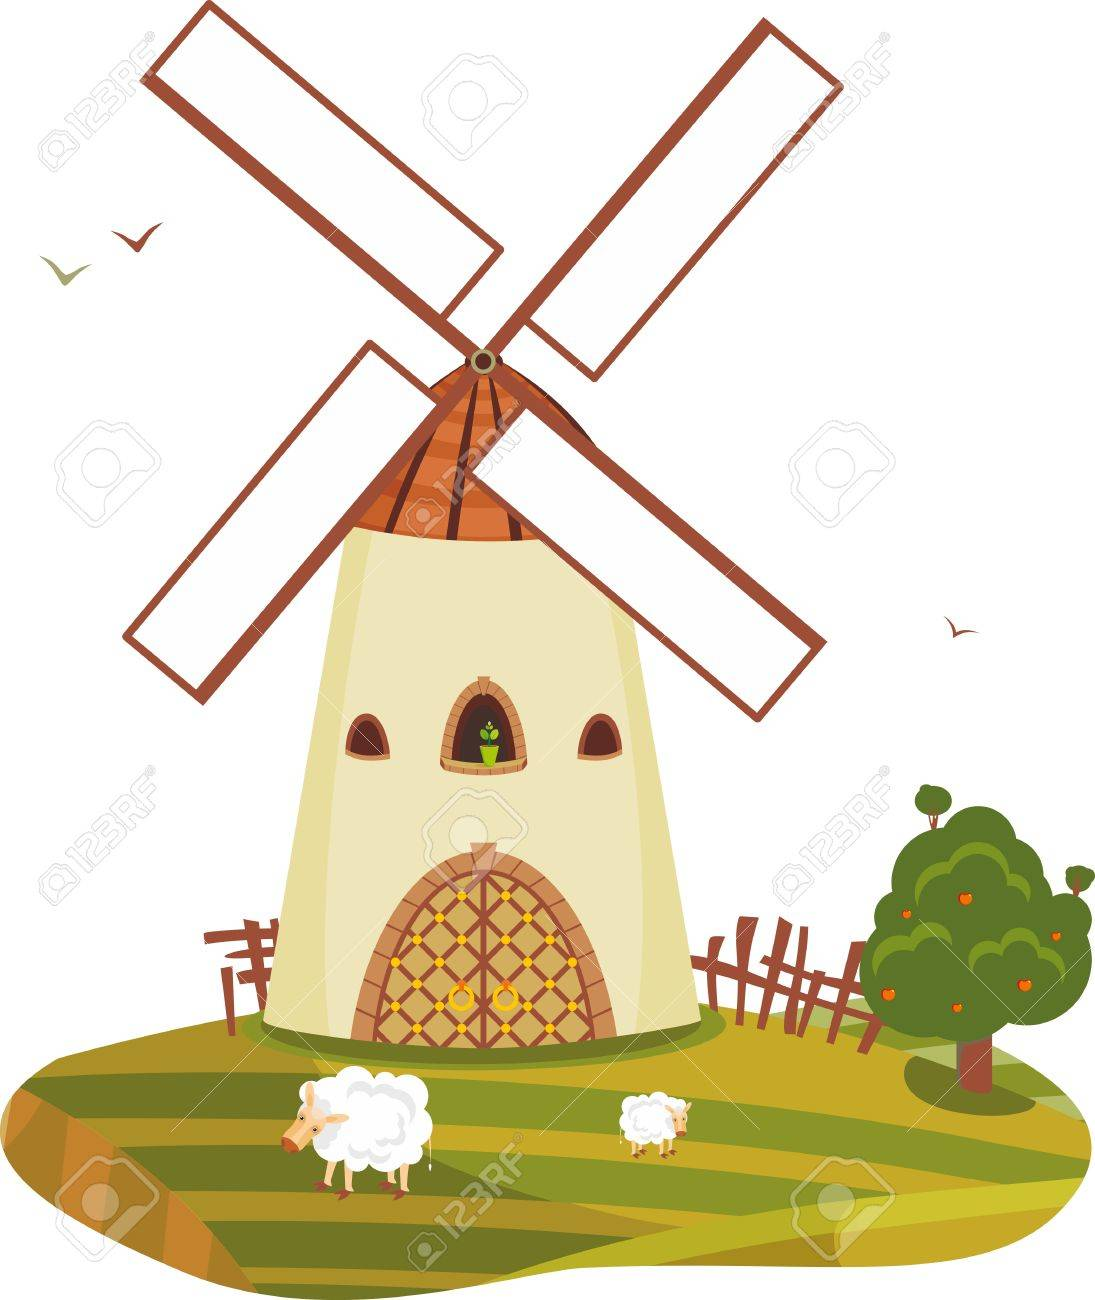 Rural landscape with a windmill an apple-tree and sheep Stock Vector - 13383420